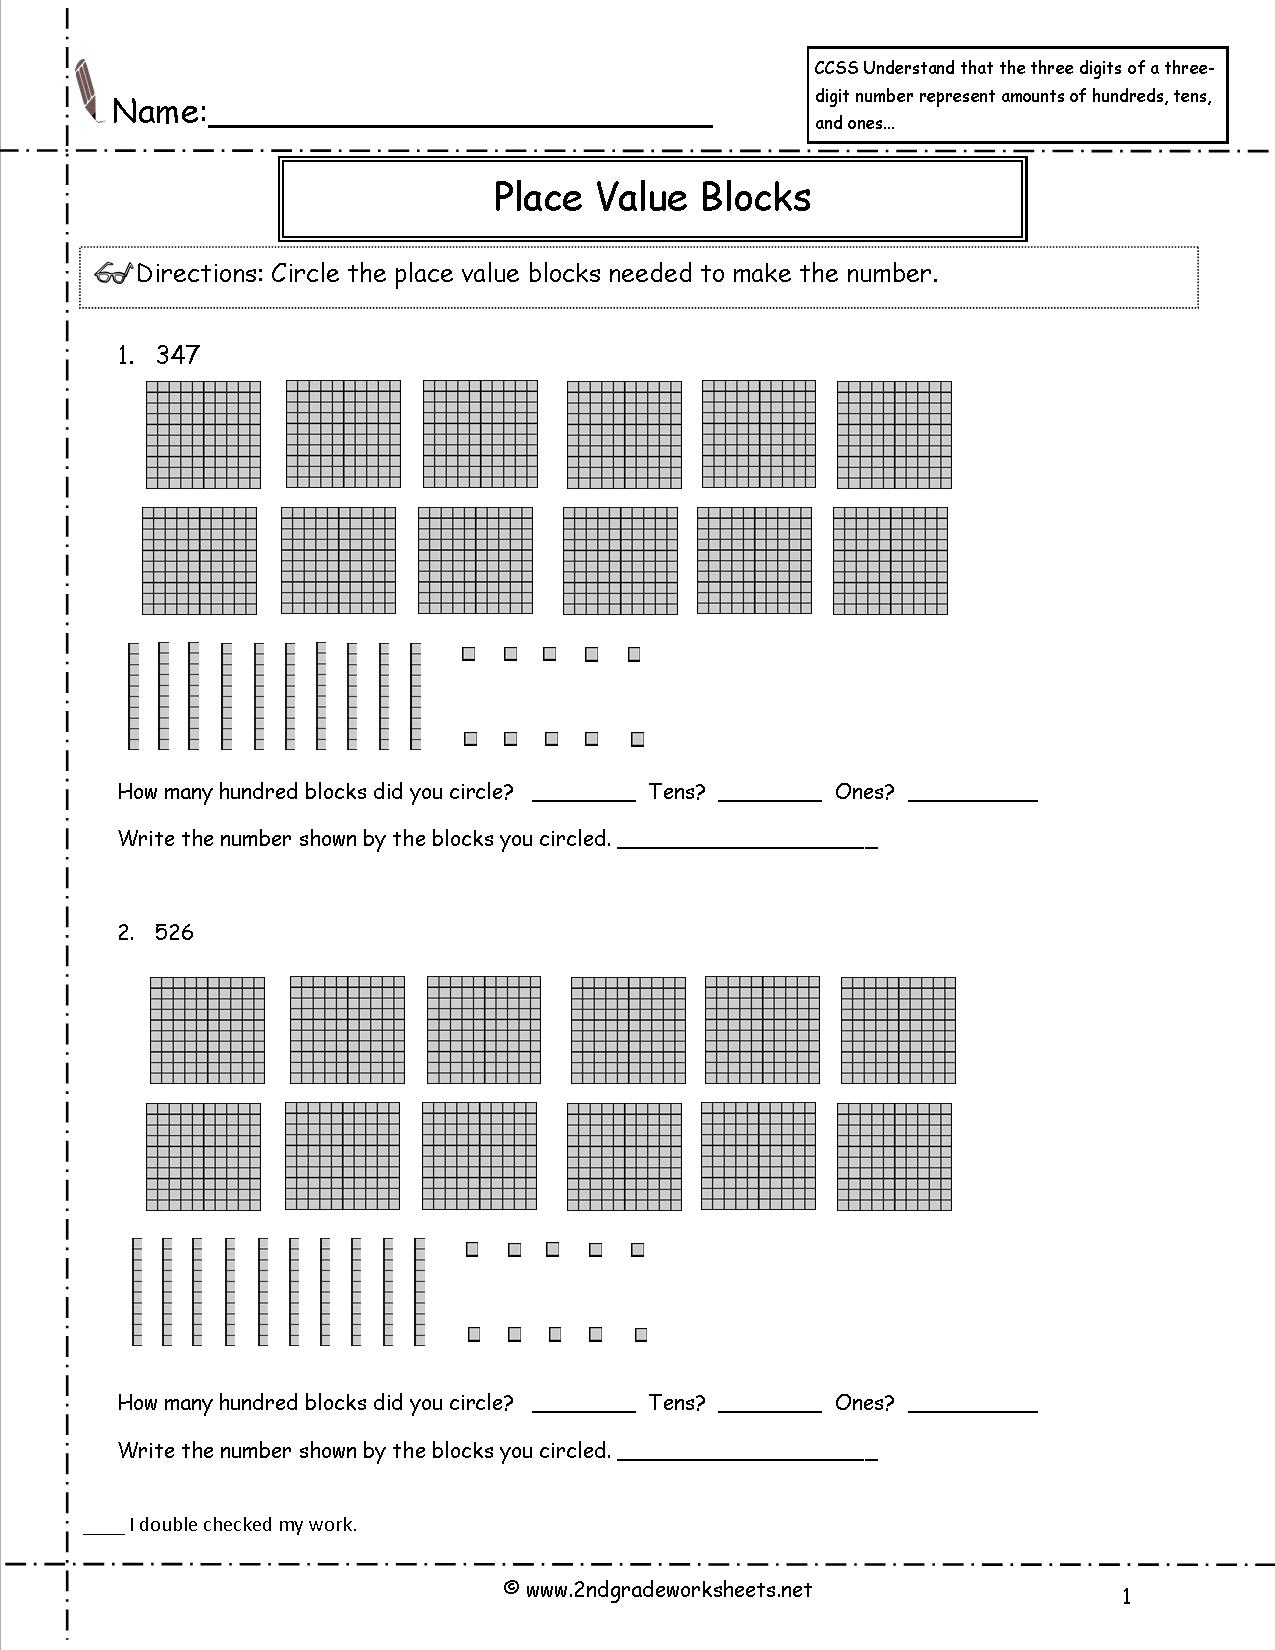 12 Best Images Of Place Value 100 Worksheets